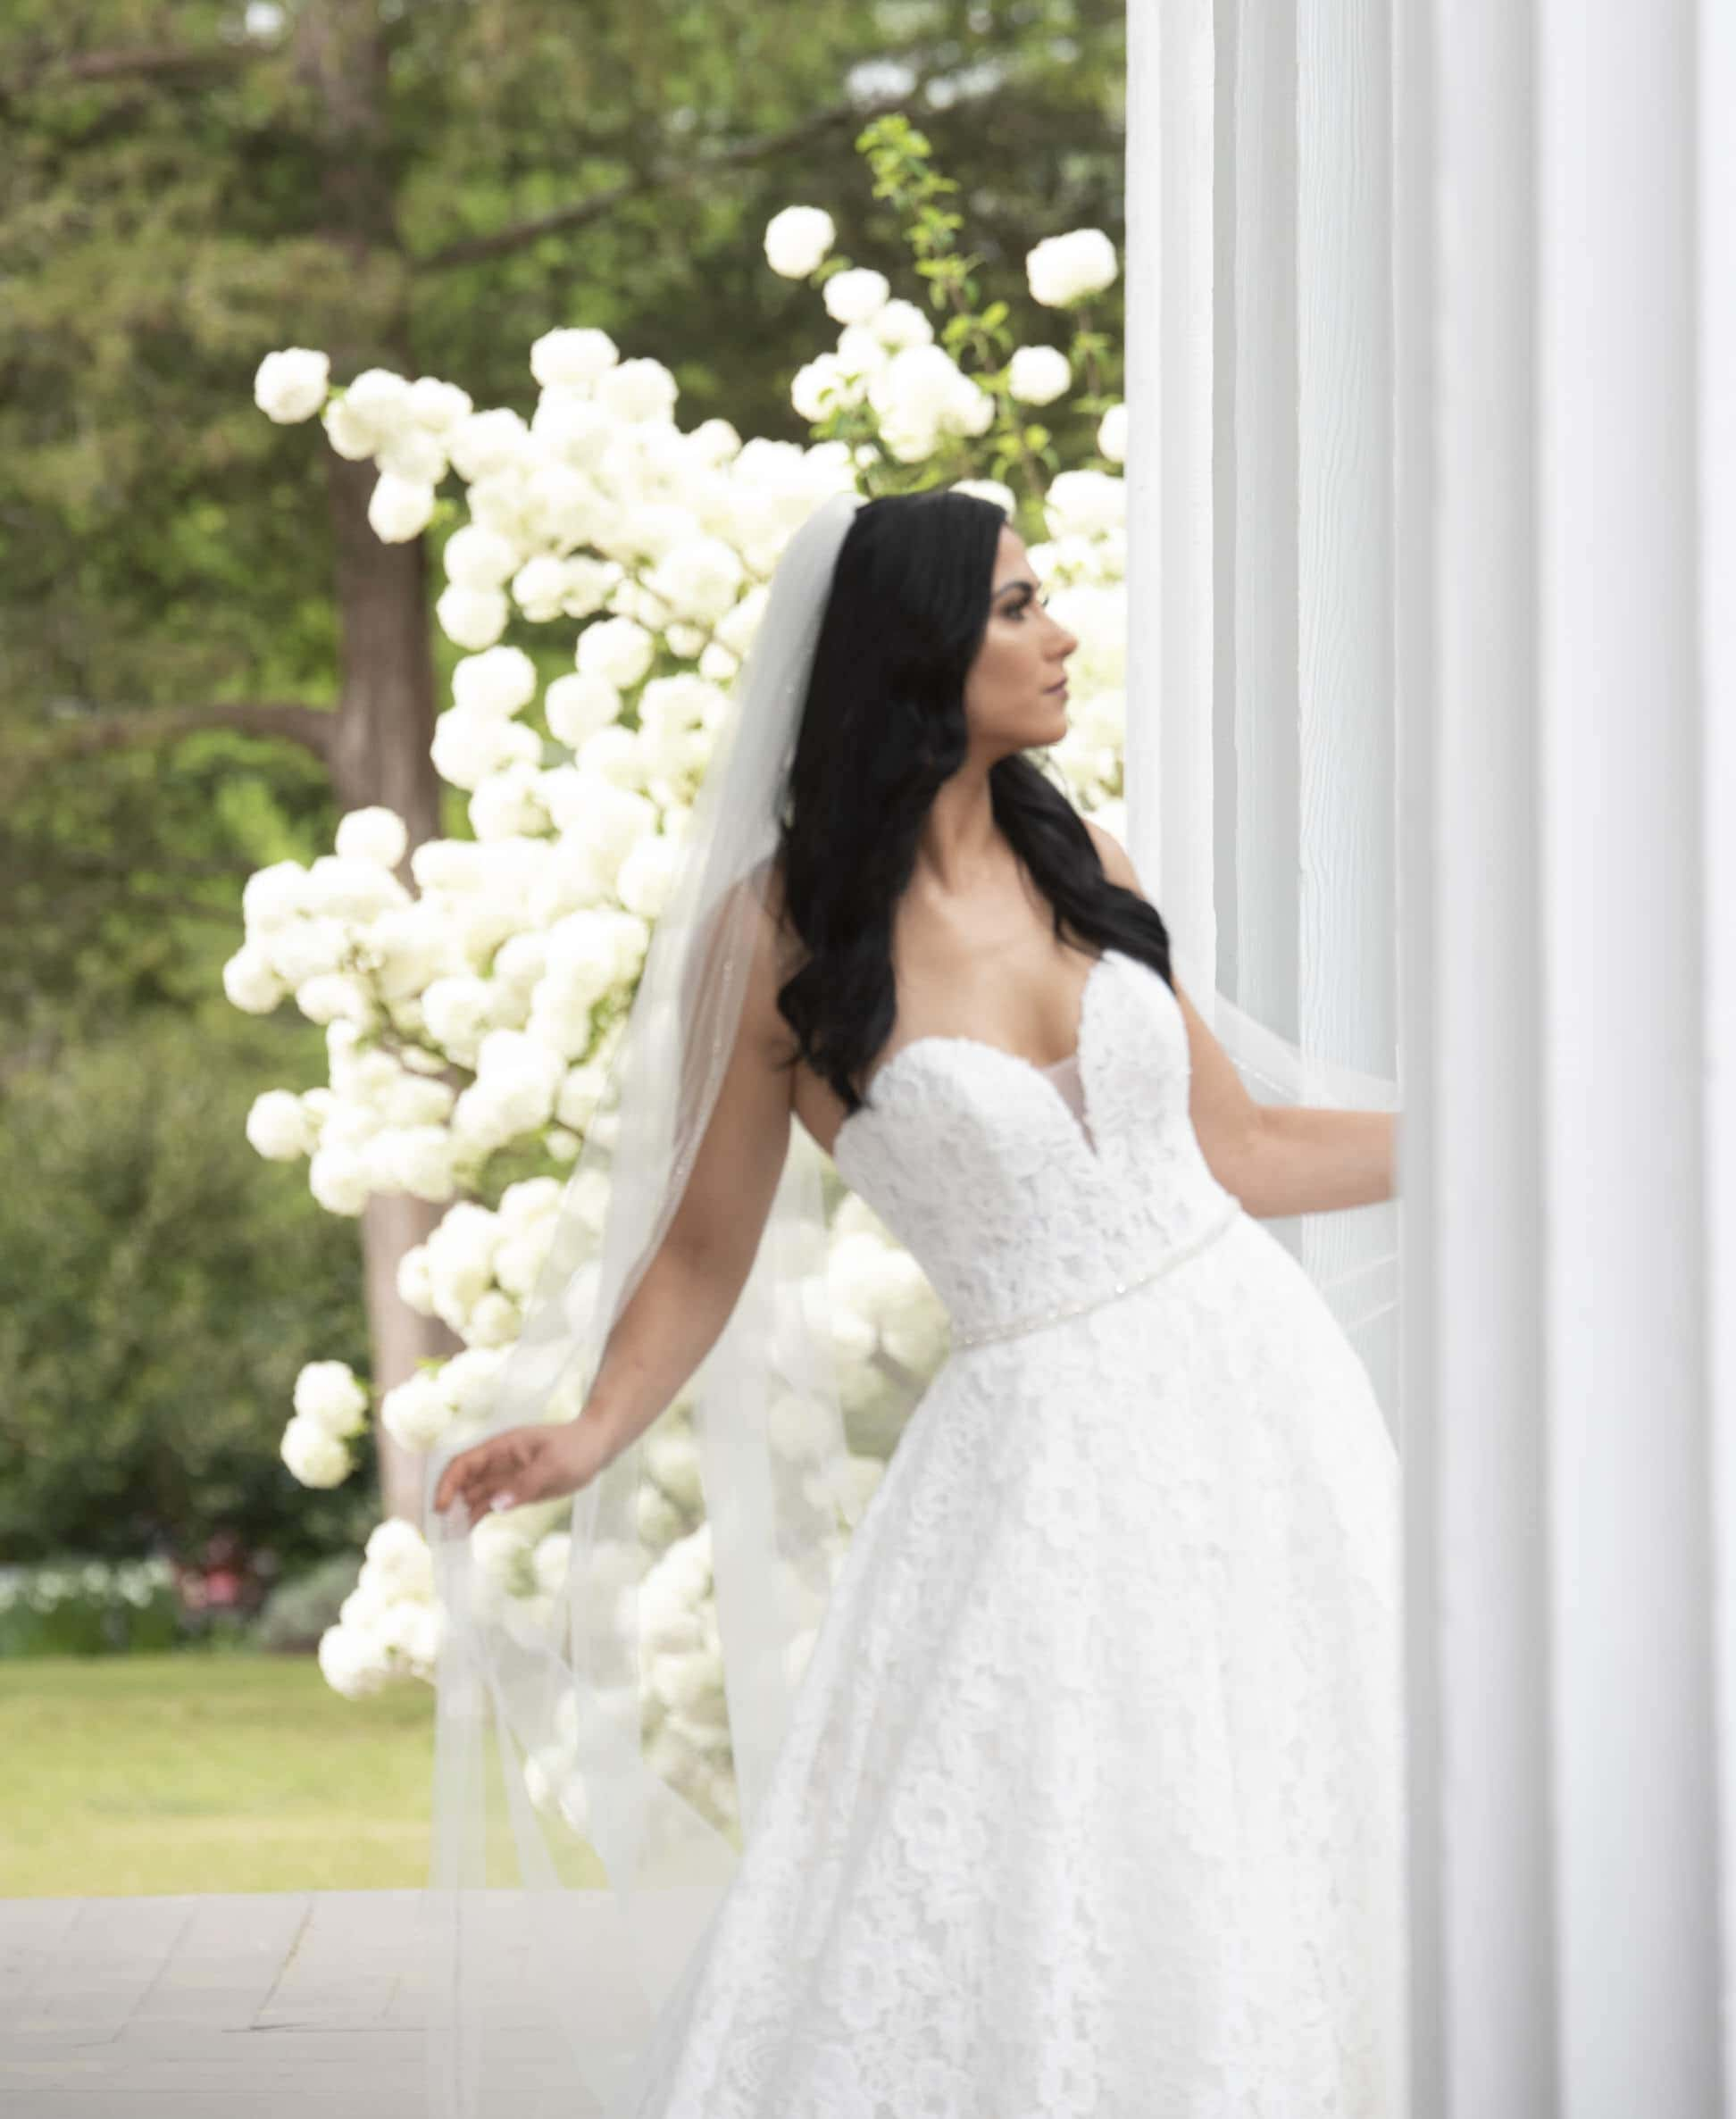 diegosphotography, photography services in Atlanta, Wedding photography